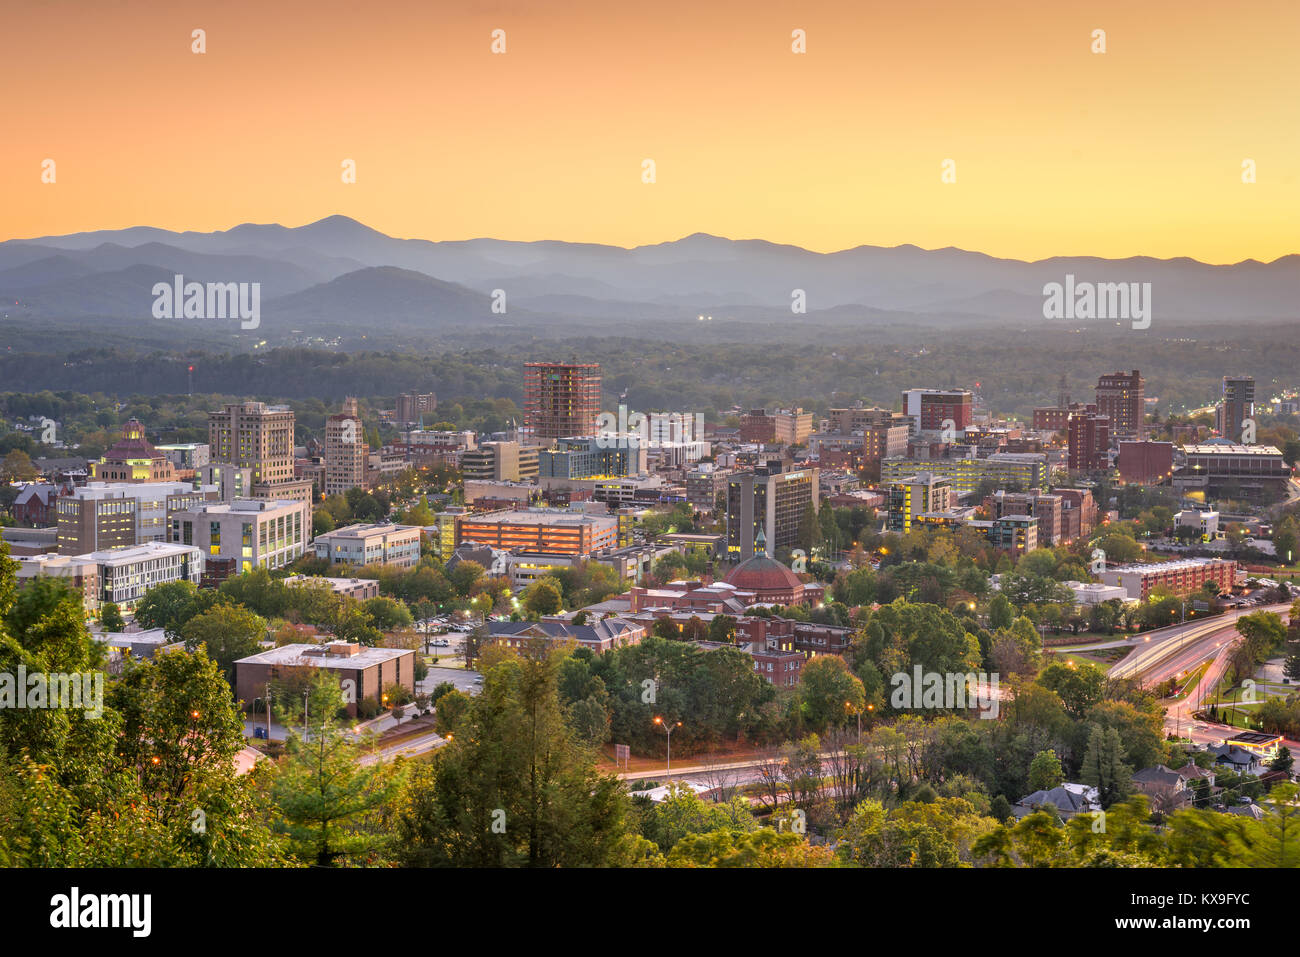 Asheville, North Carolina, USA downtown skyline at dusk. Stock Photo